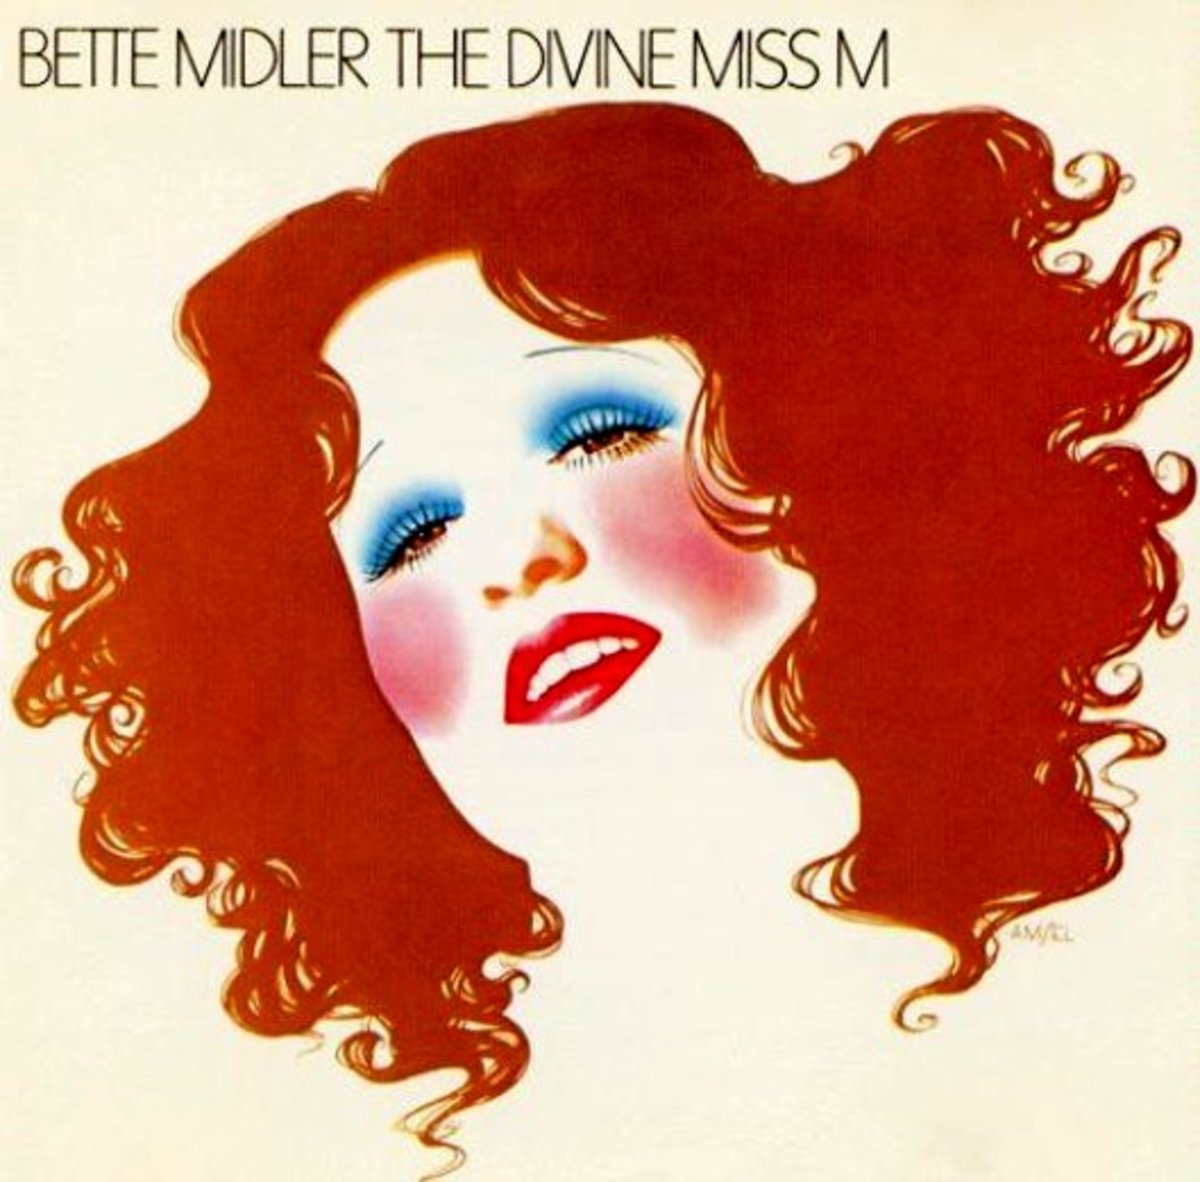 Bette Midler Divine Miss M(521X)